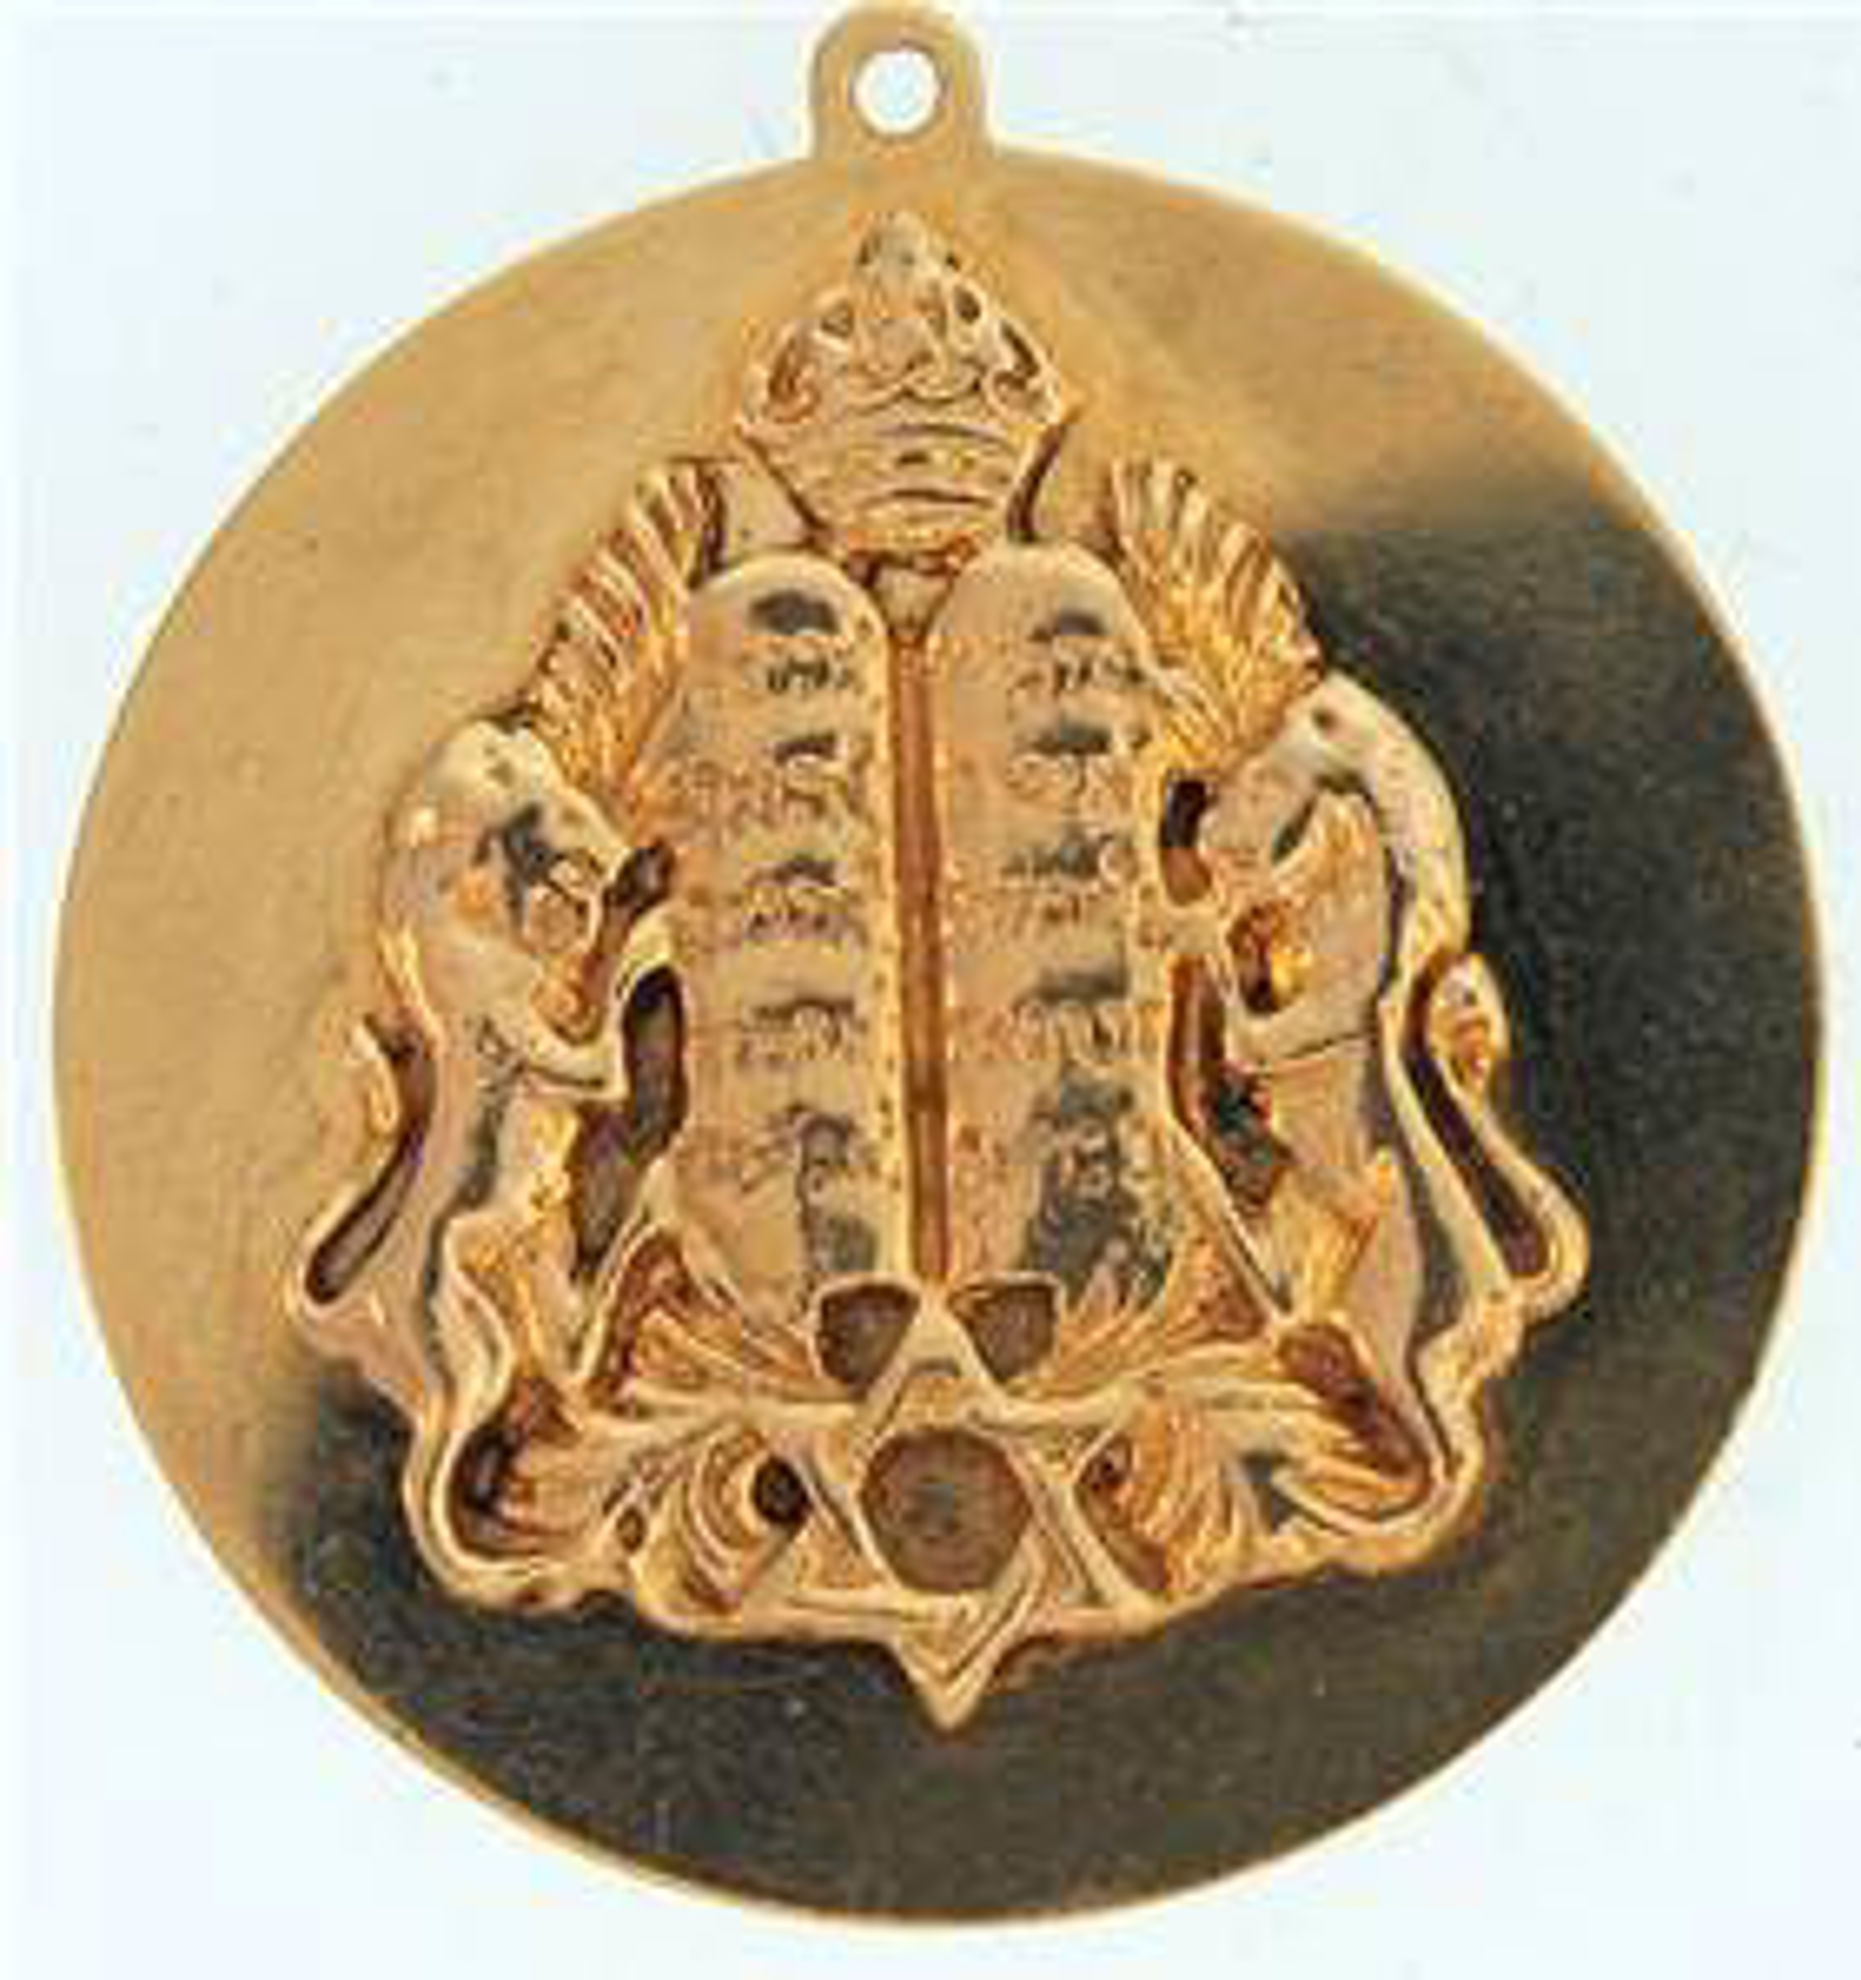 Picture of Charms & Pendants 14kt-6.5 DWT, 10.1 Grams